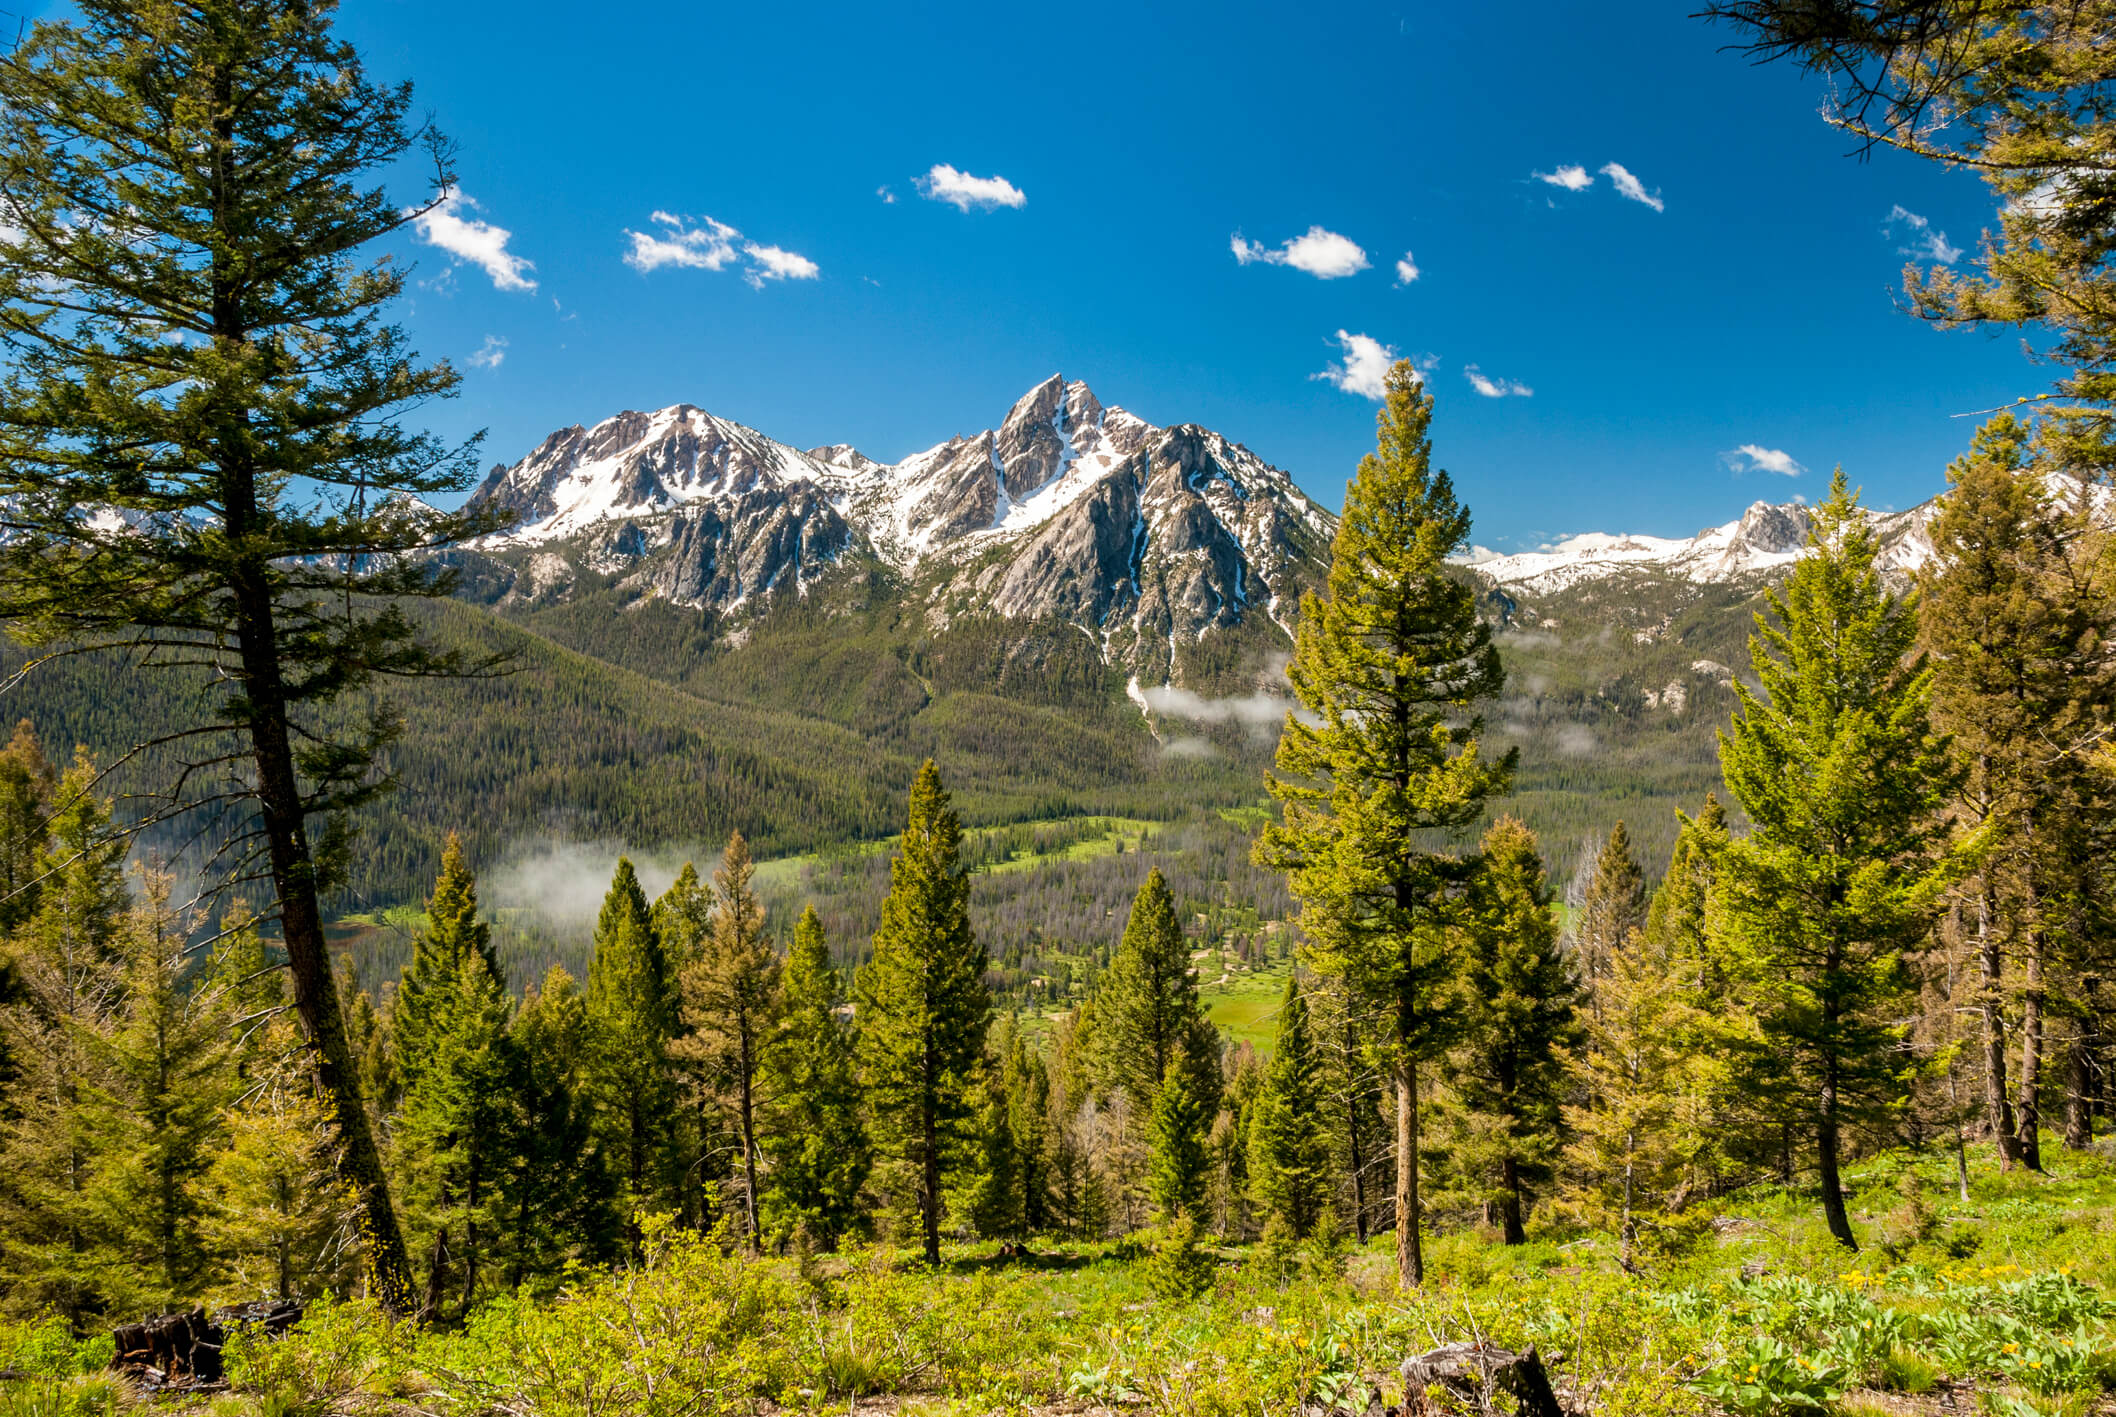 The views of the Sawtooths never get old.